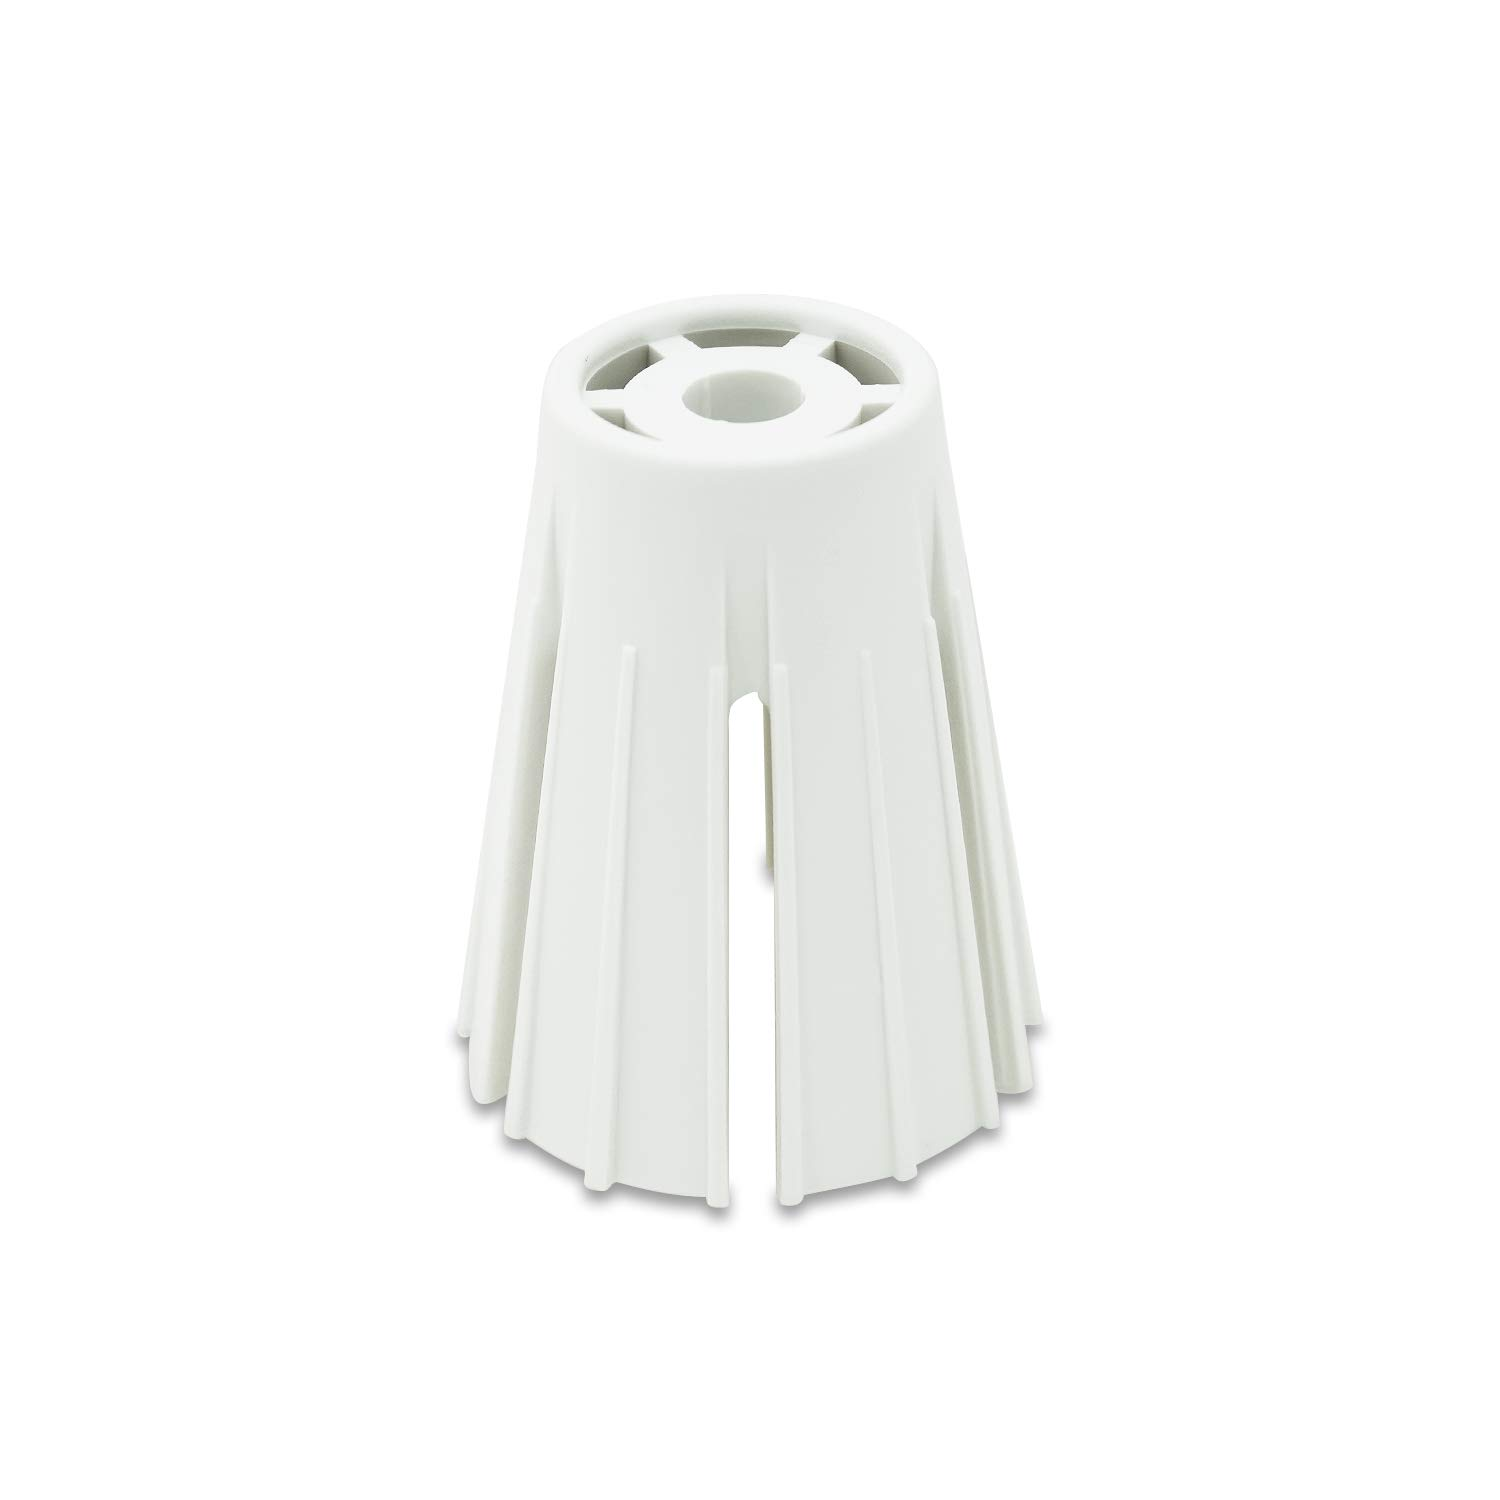 Janome Spool & Cone Holder Spacer